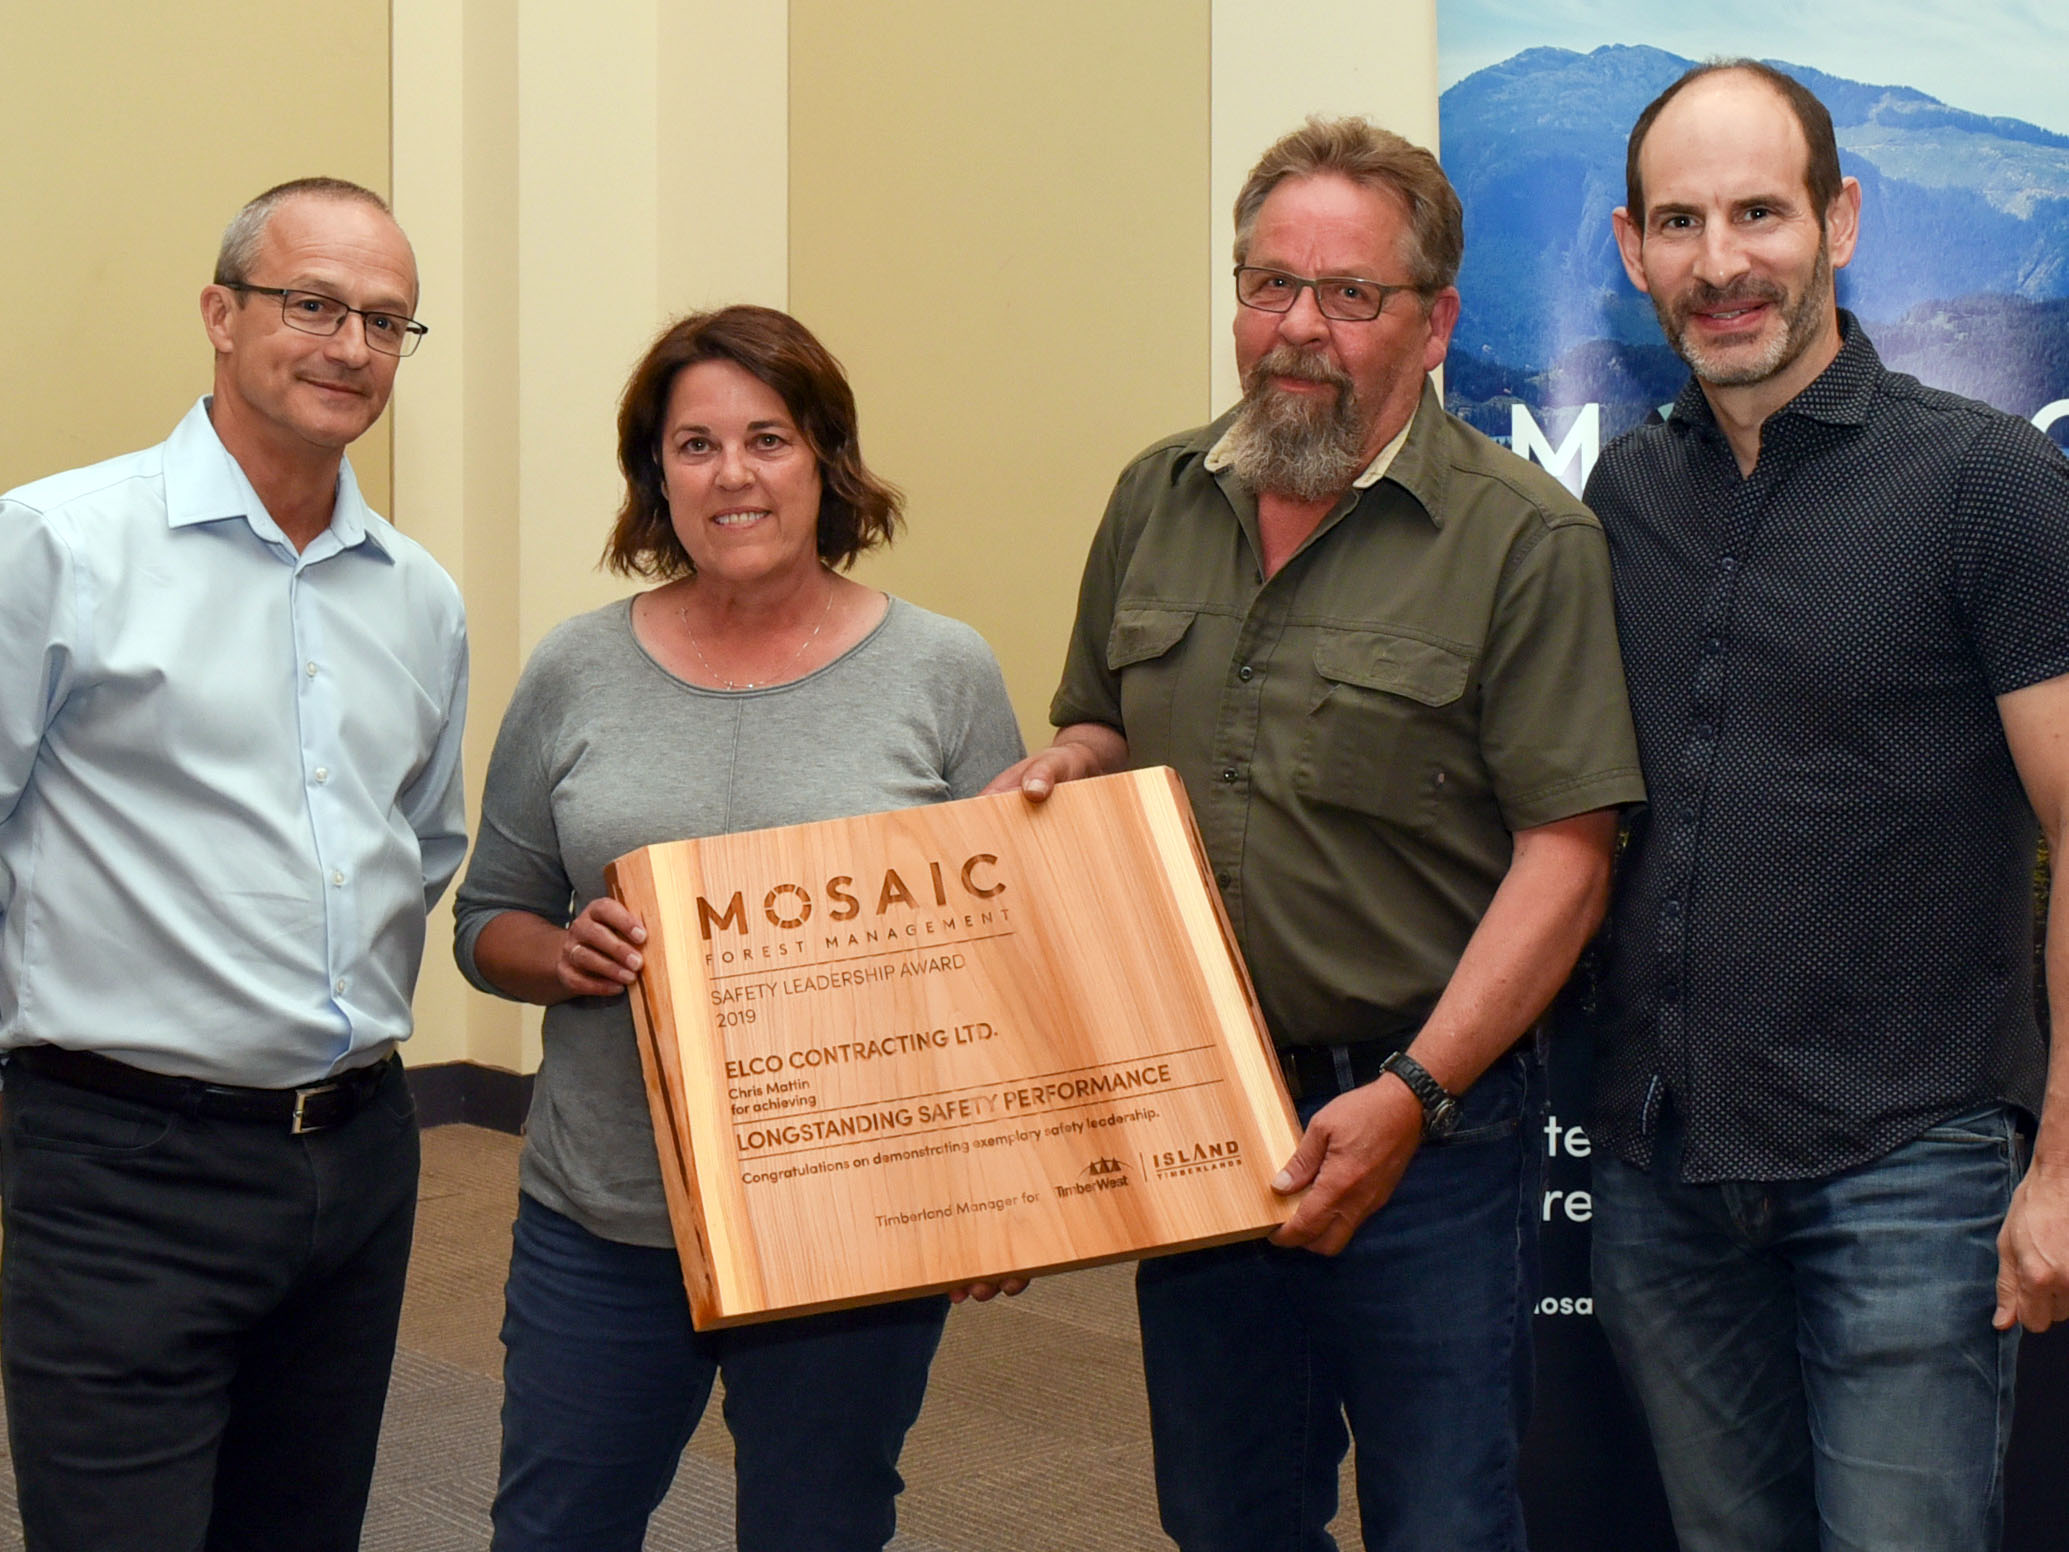 (l to r) Mosaic Forest Management's Director, Health and Safety, John Shearing; Linda and Chris Mattin, of Elco Contracting Ltd.; and Jeff Zweig, President and Chief Executive Officer, Mosaic.